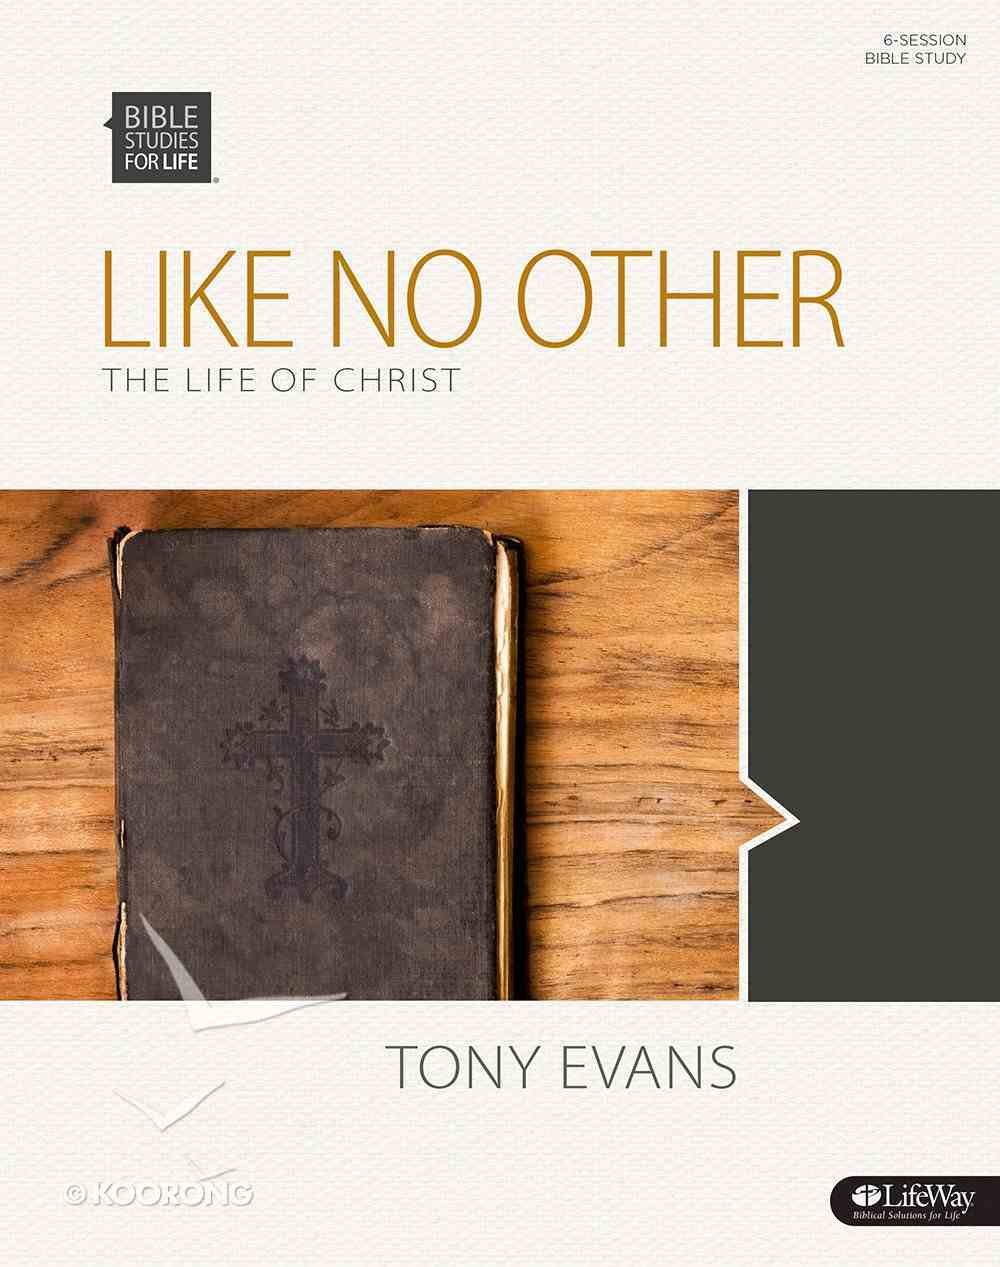 Like No Other the Life of Christ (Member Book) (Bible Studies For Life Series) Paperback